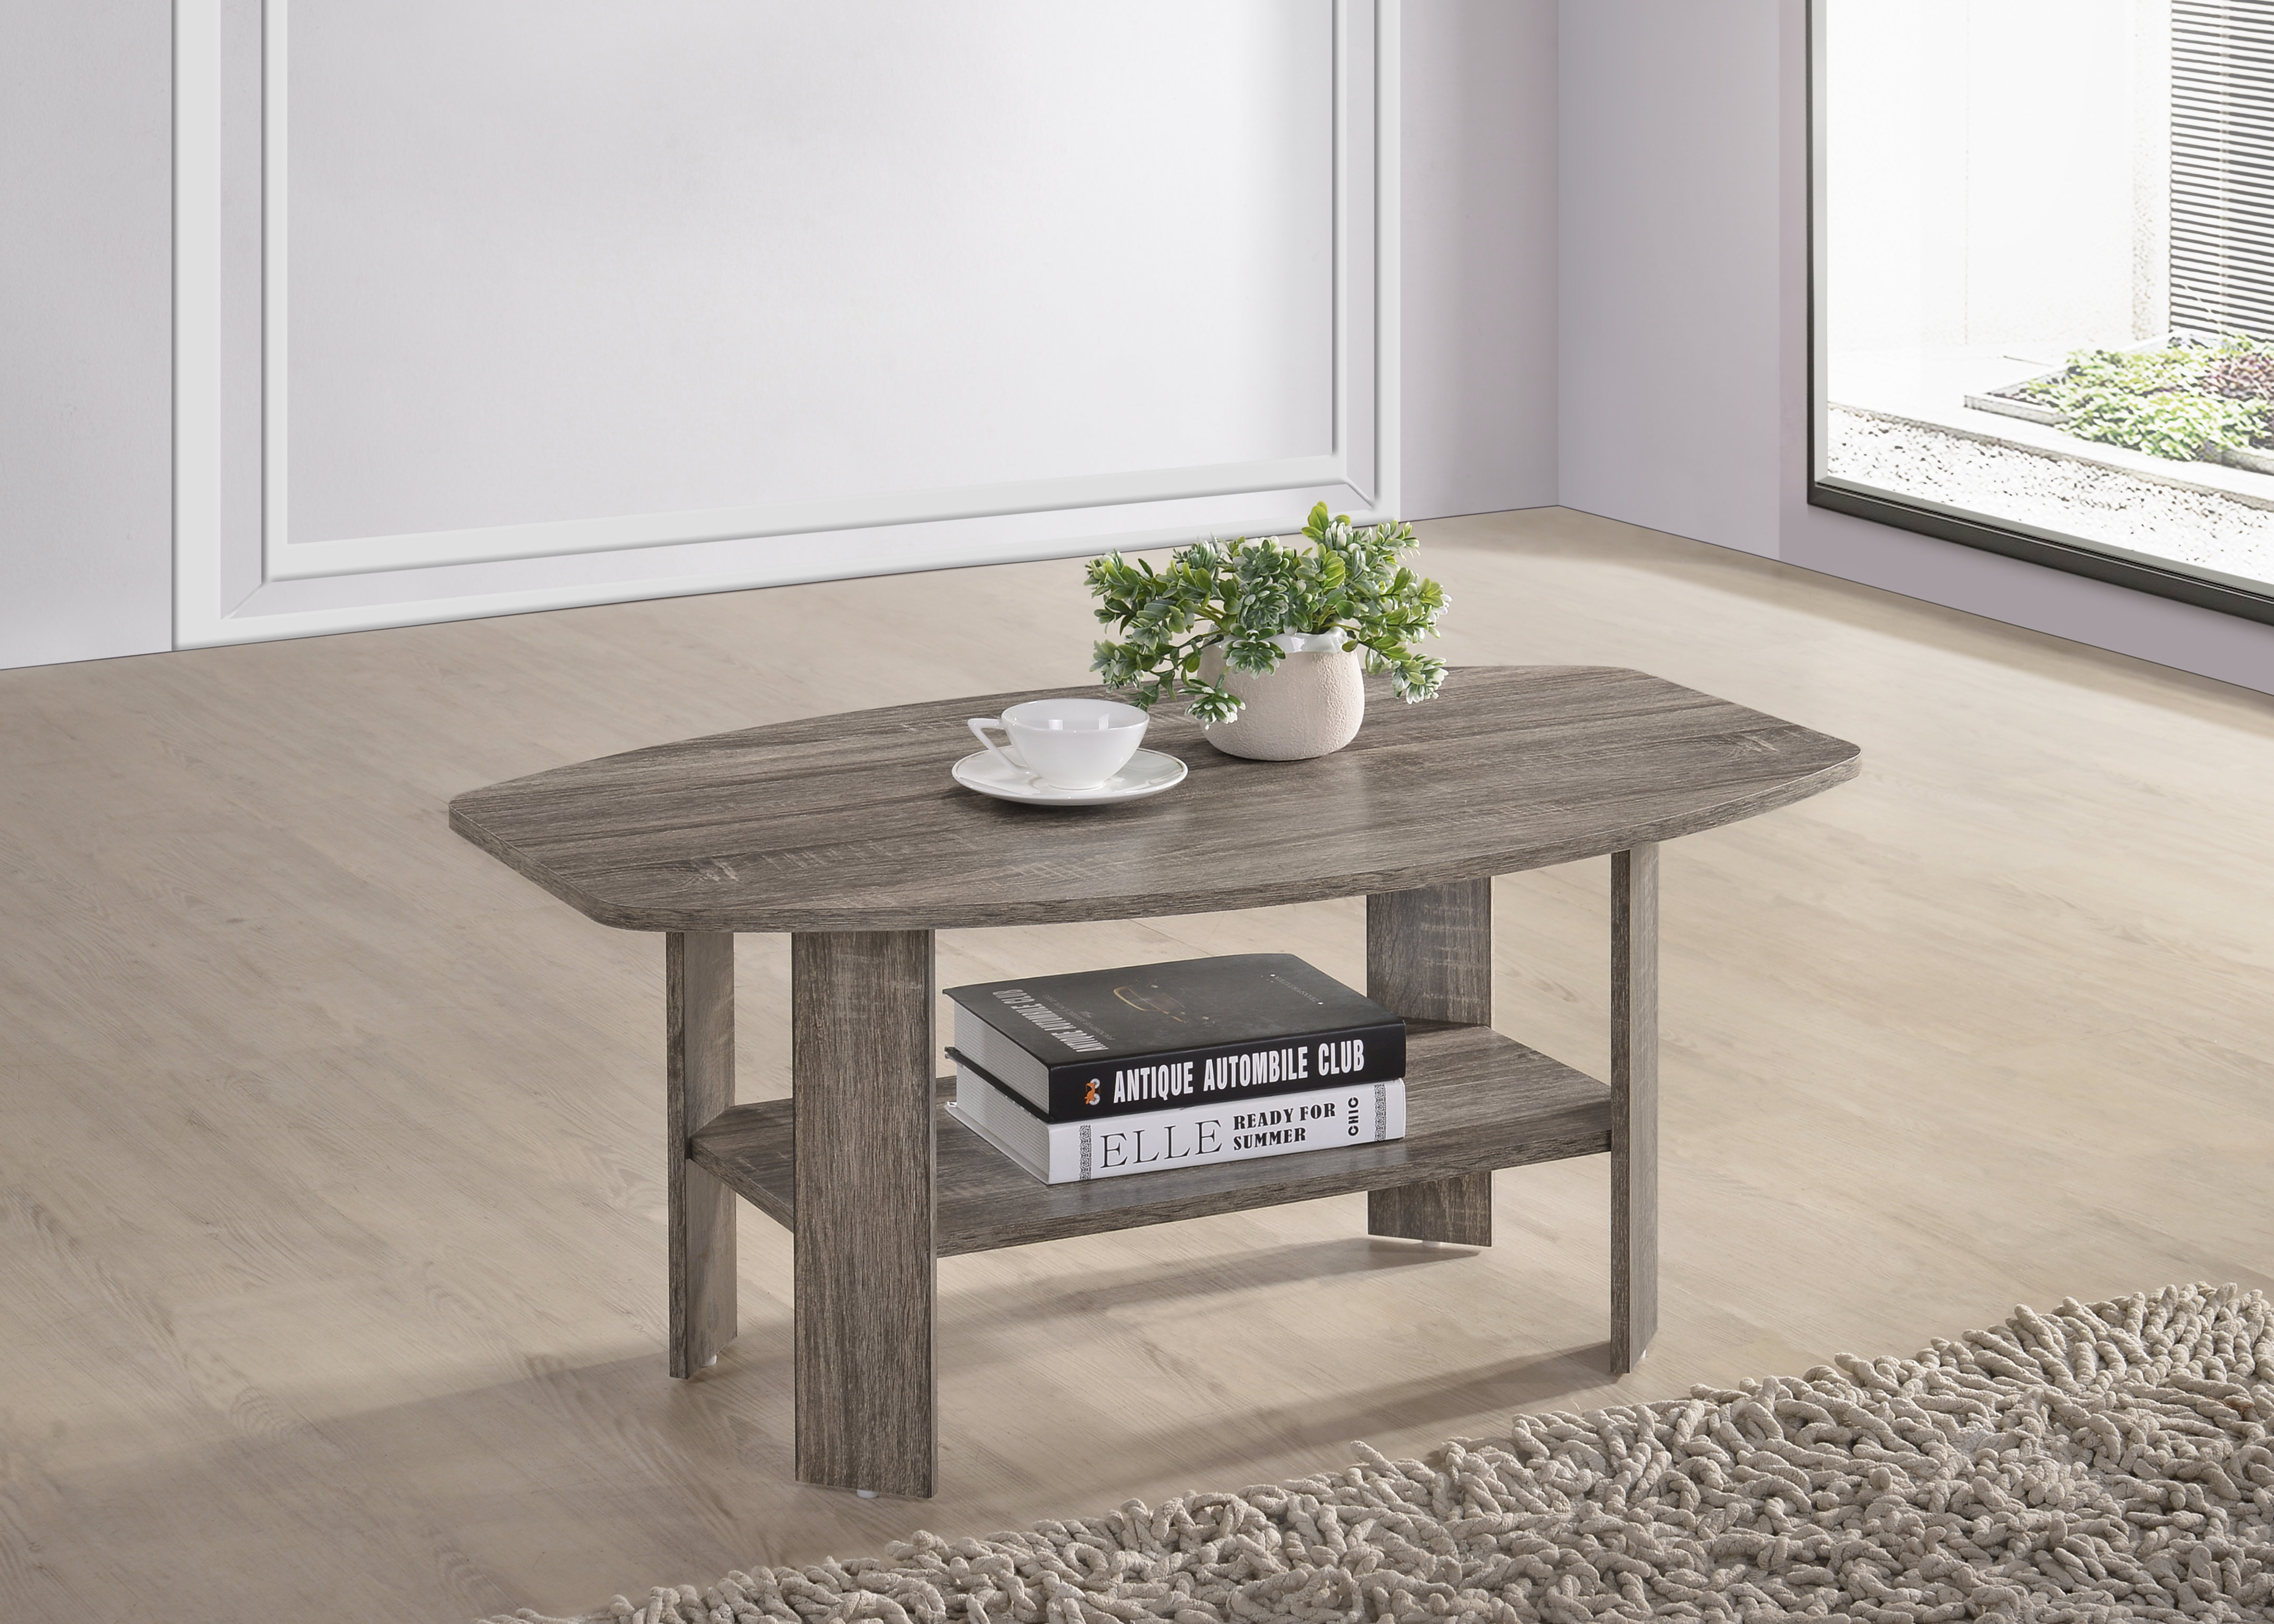 Highland Dunes Hillen Coffee Table Reviews Wayfair throughout proportions 4325 X 3089